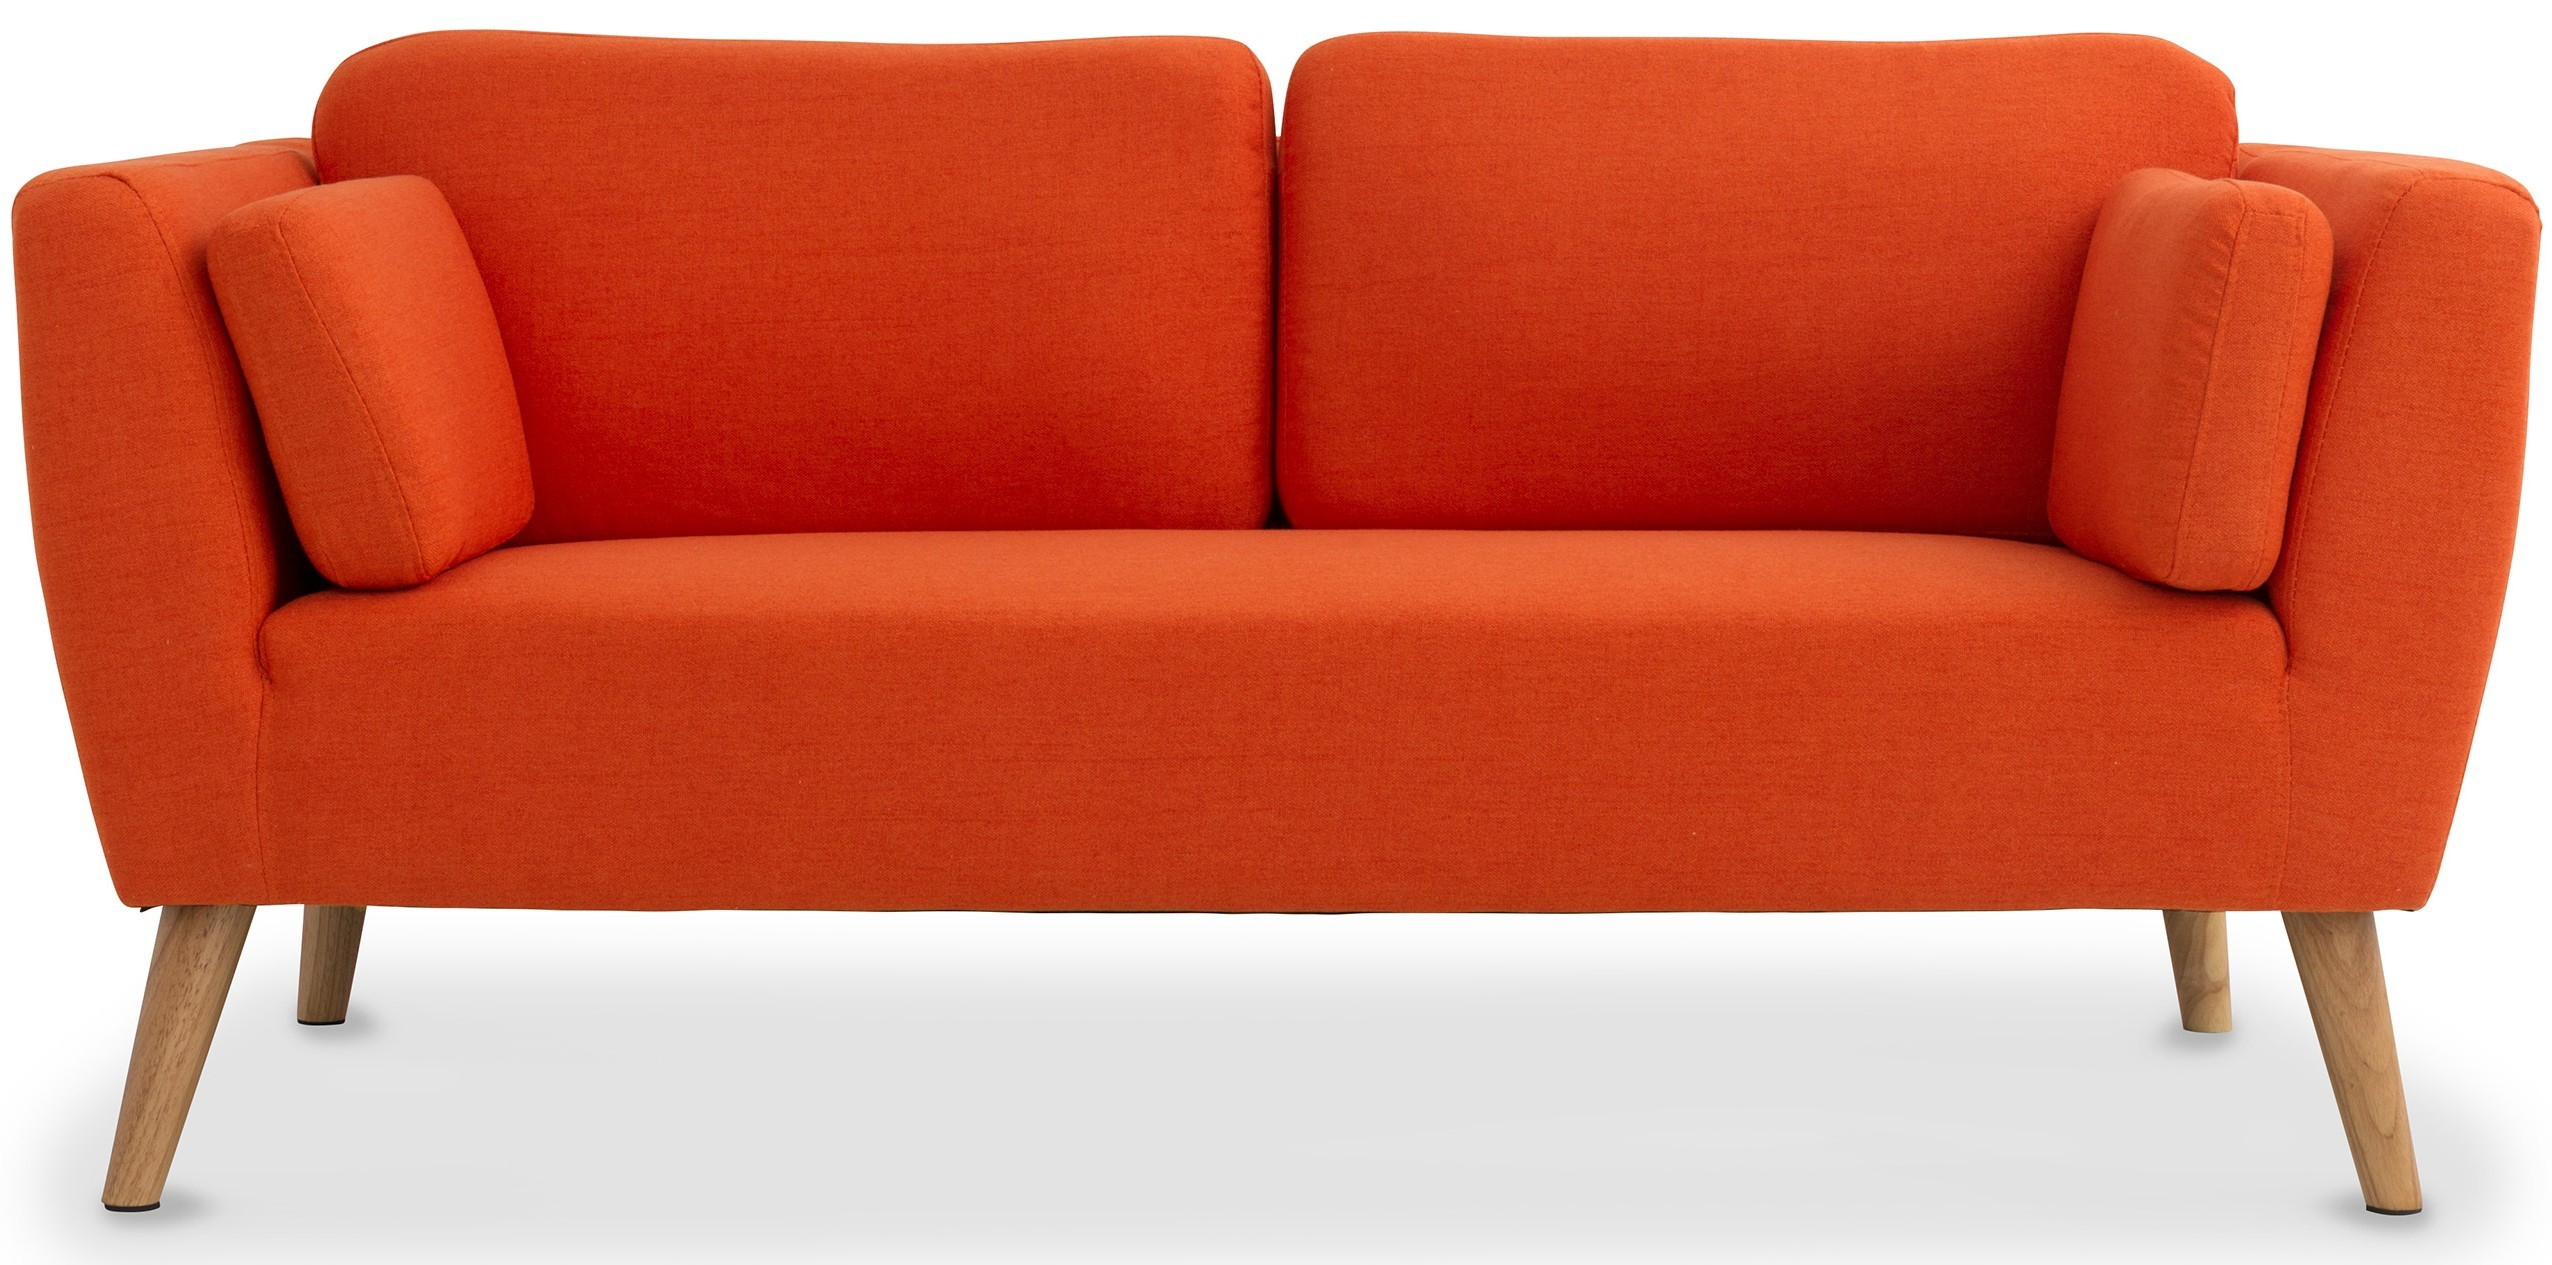 Canapé 2 places scandinave tissu orange Fria   LesTendances.fr 706ab0719b92